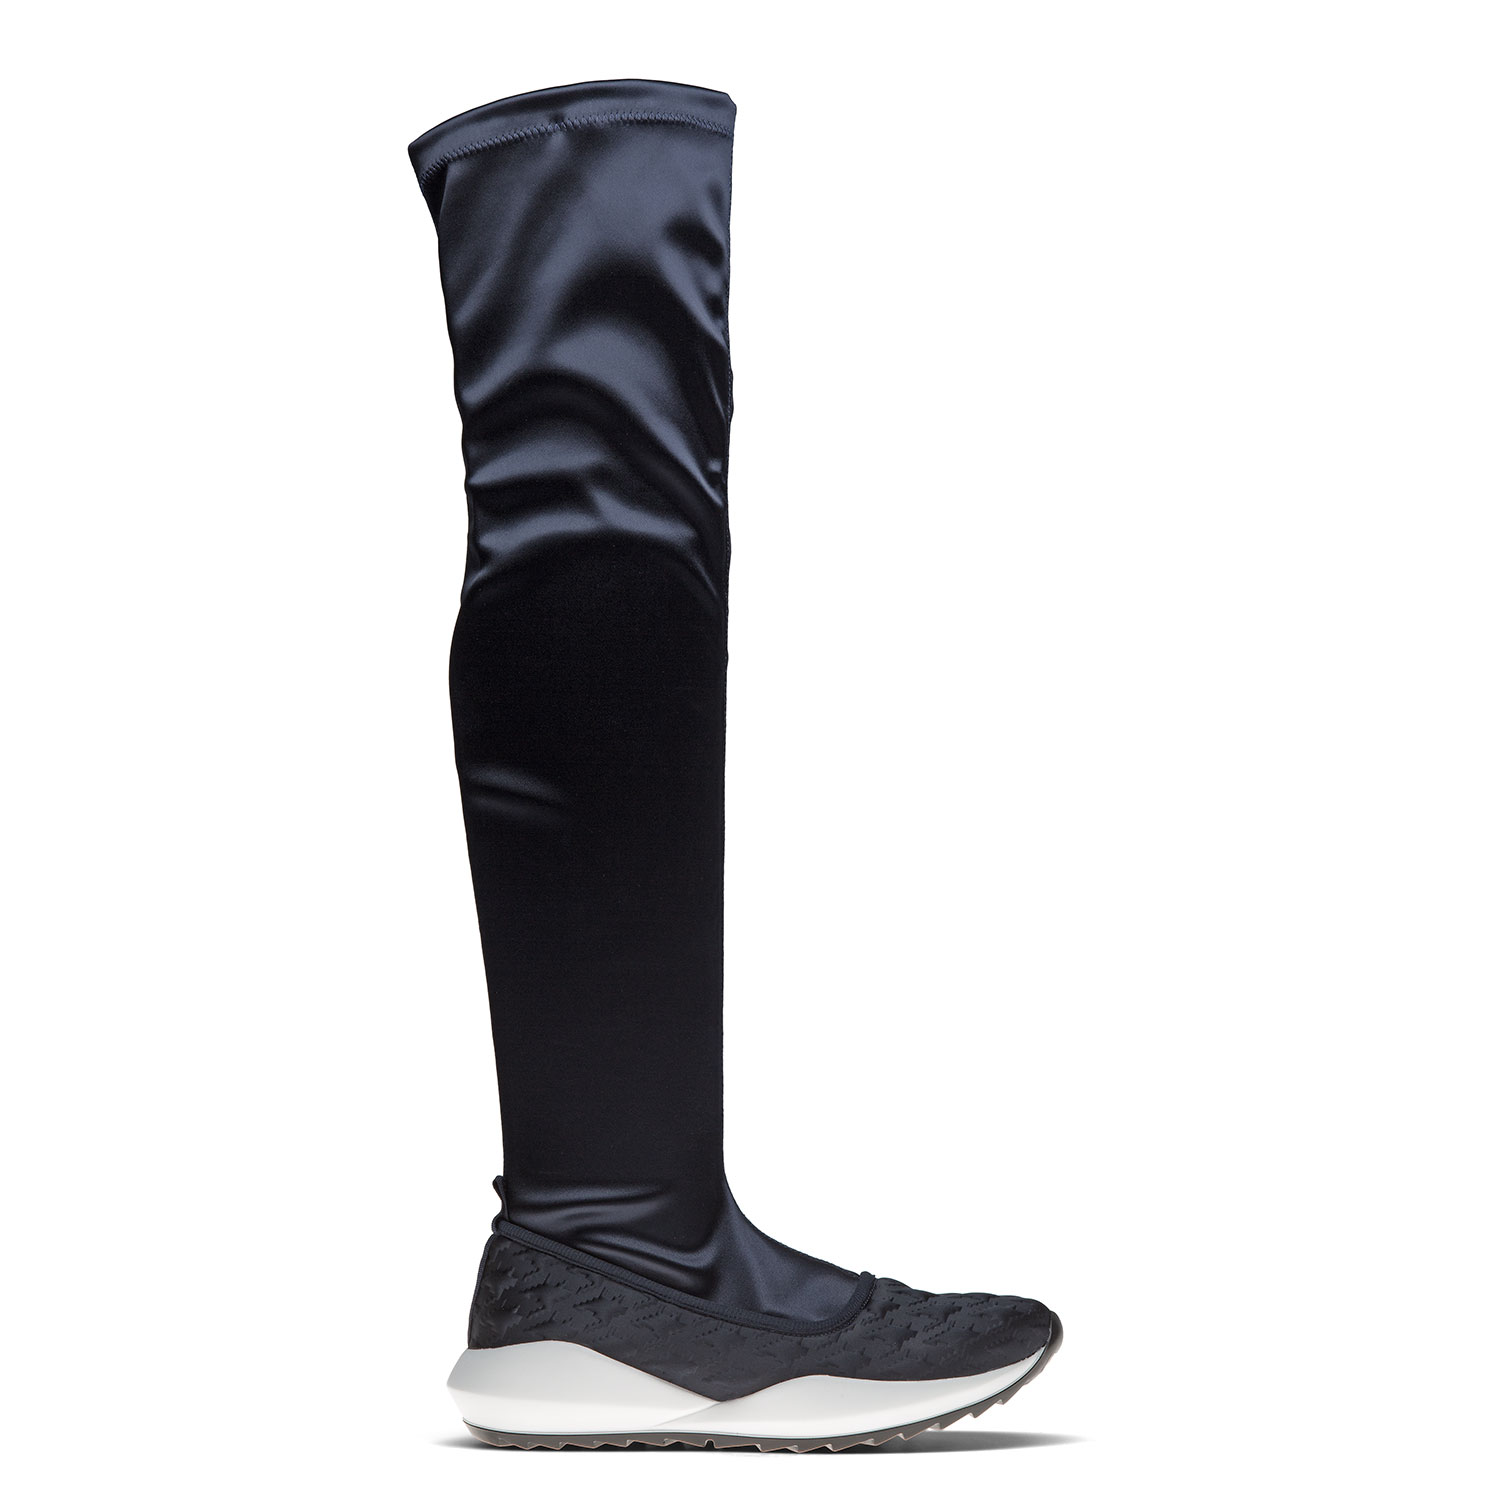 Women's high boots CARLO PAZOLINI CL-PIT3-6